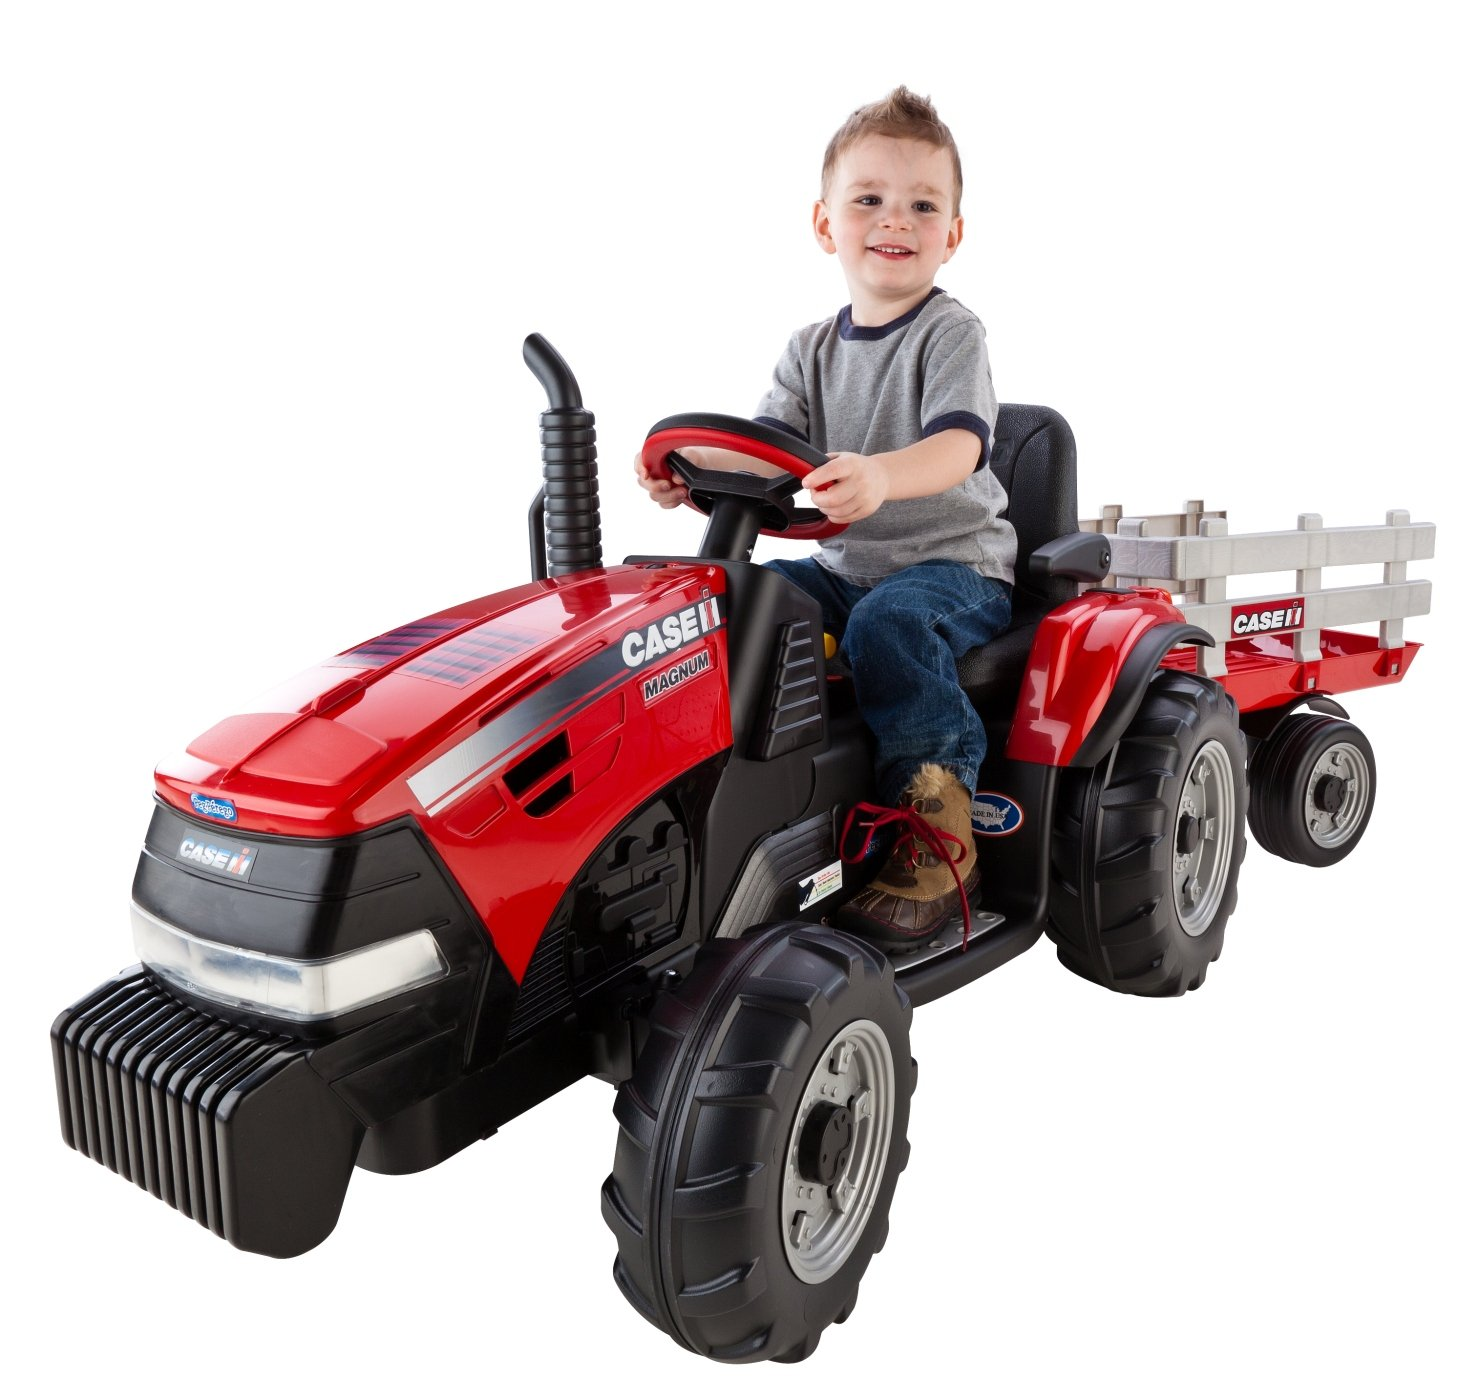 Amazon Peg Perego Case IH Magnum Tractor Trailer Toys & Games